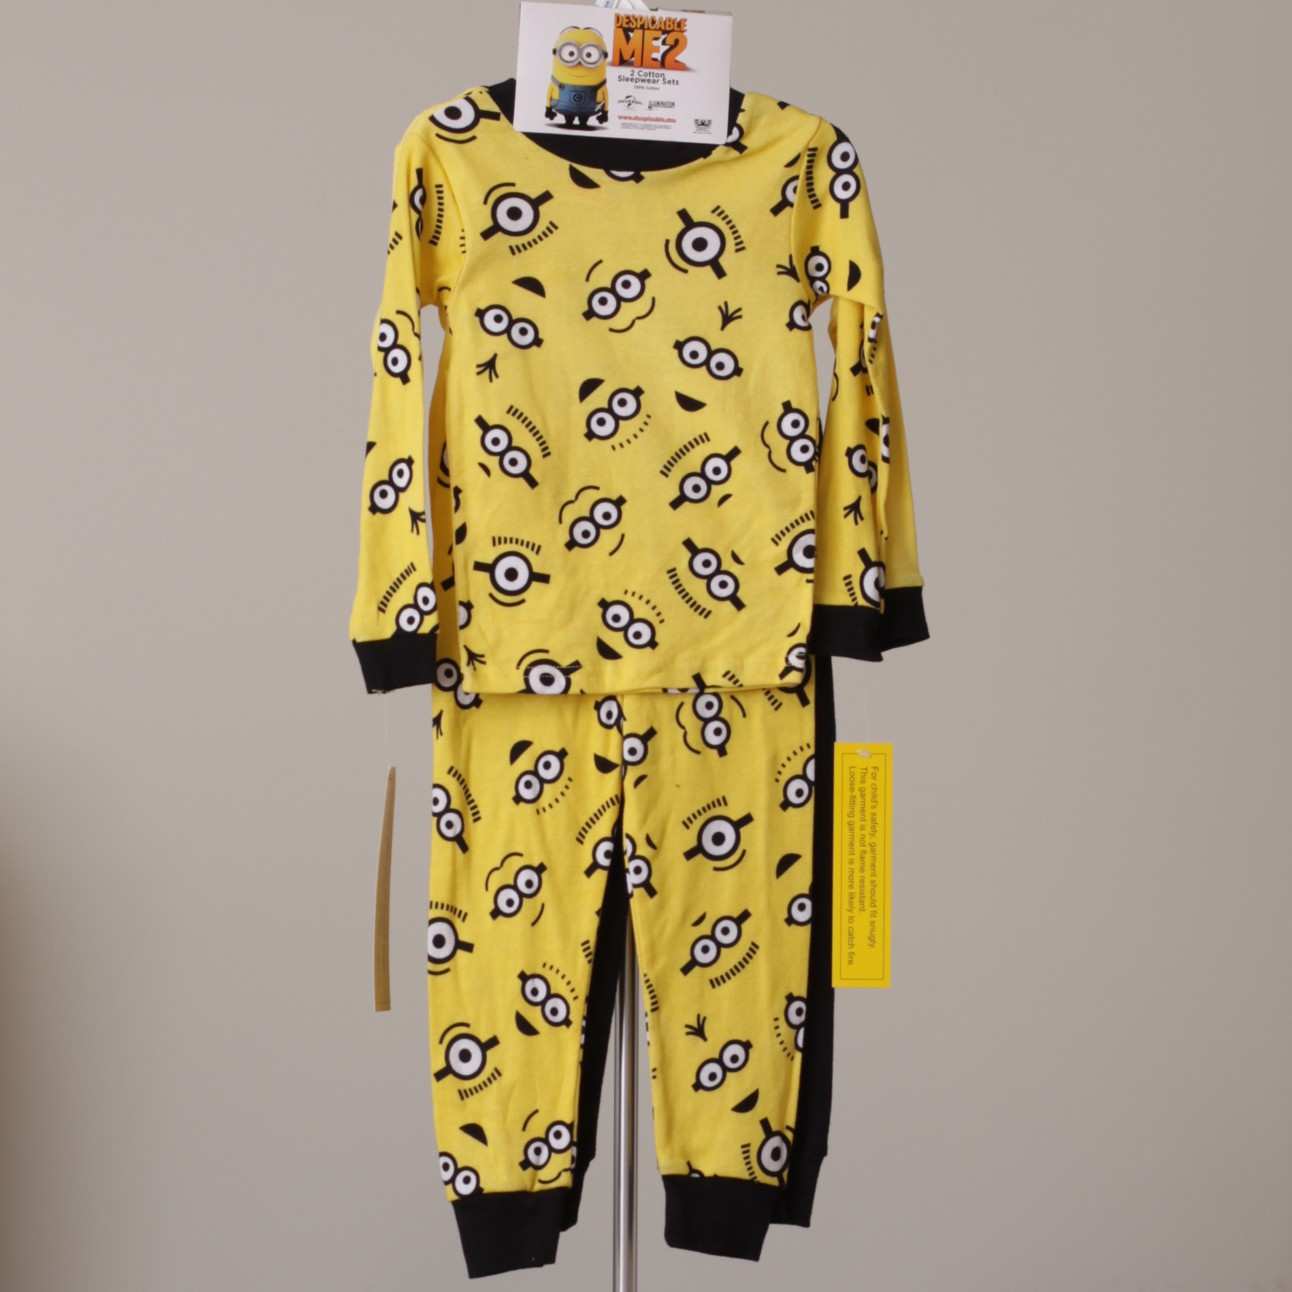 MINIONS DESPICABLE ME TODDLER GIRLS FLEECE PAJAMA PJs SET HEARTS NWT $30 SIZE 4T